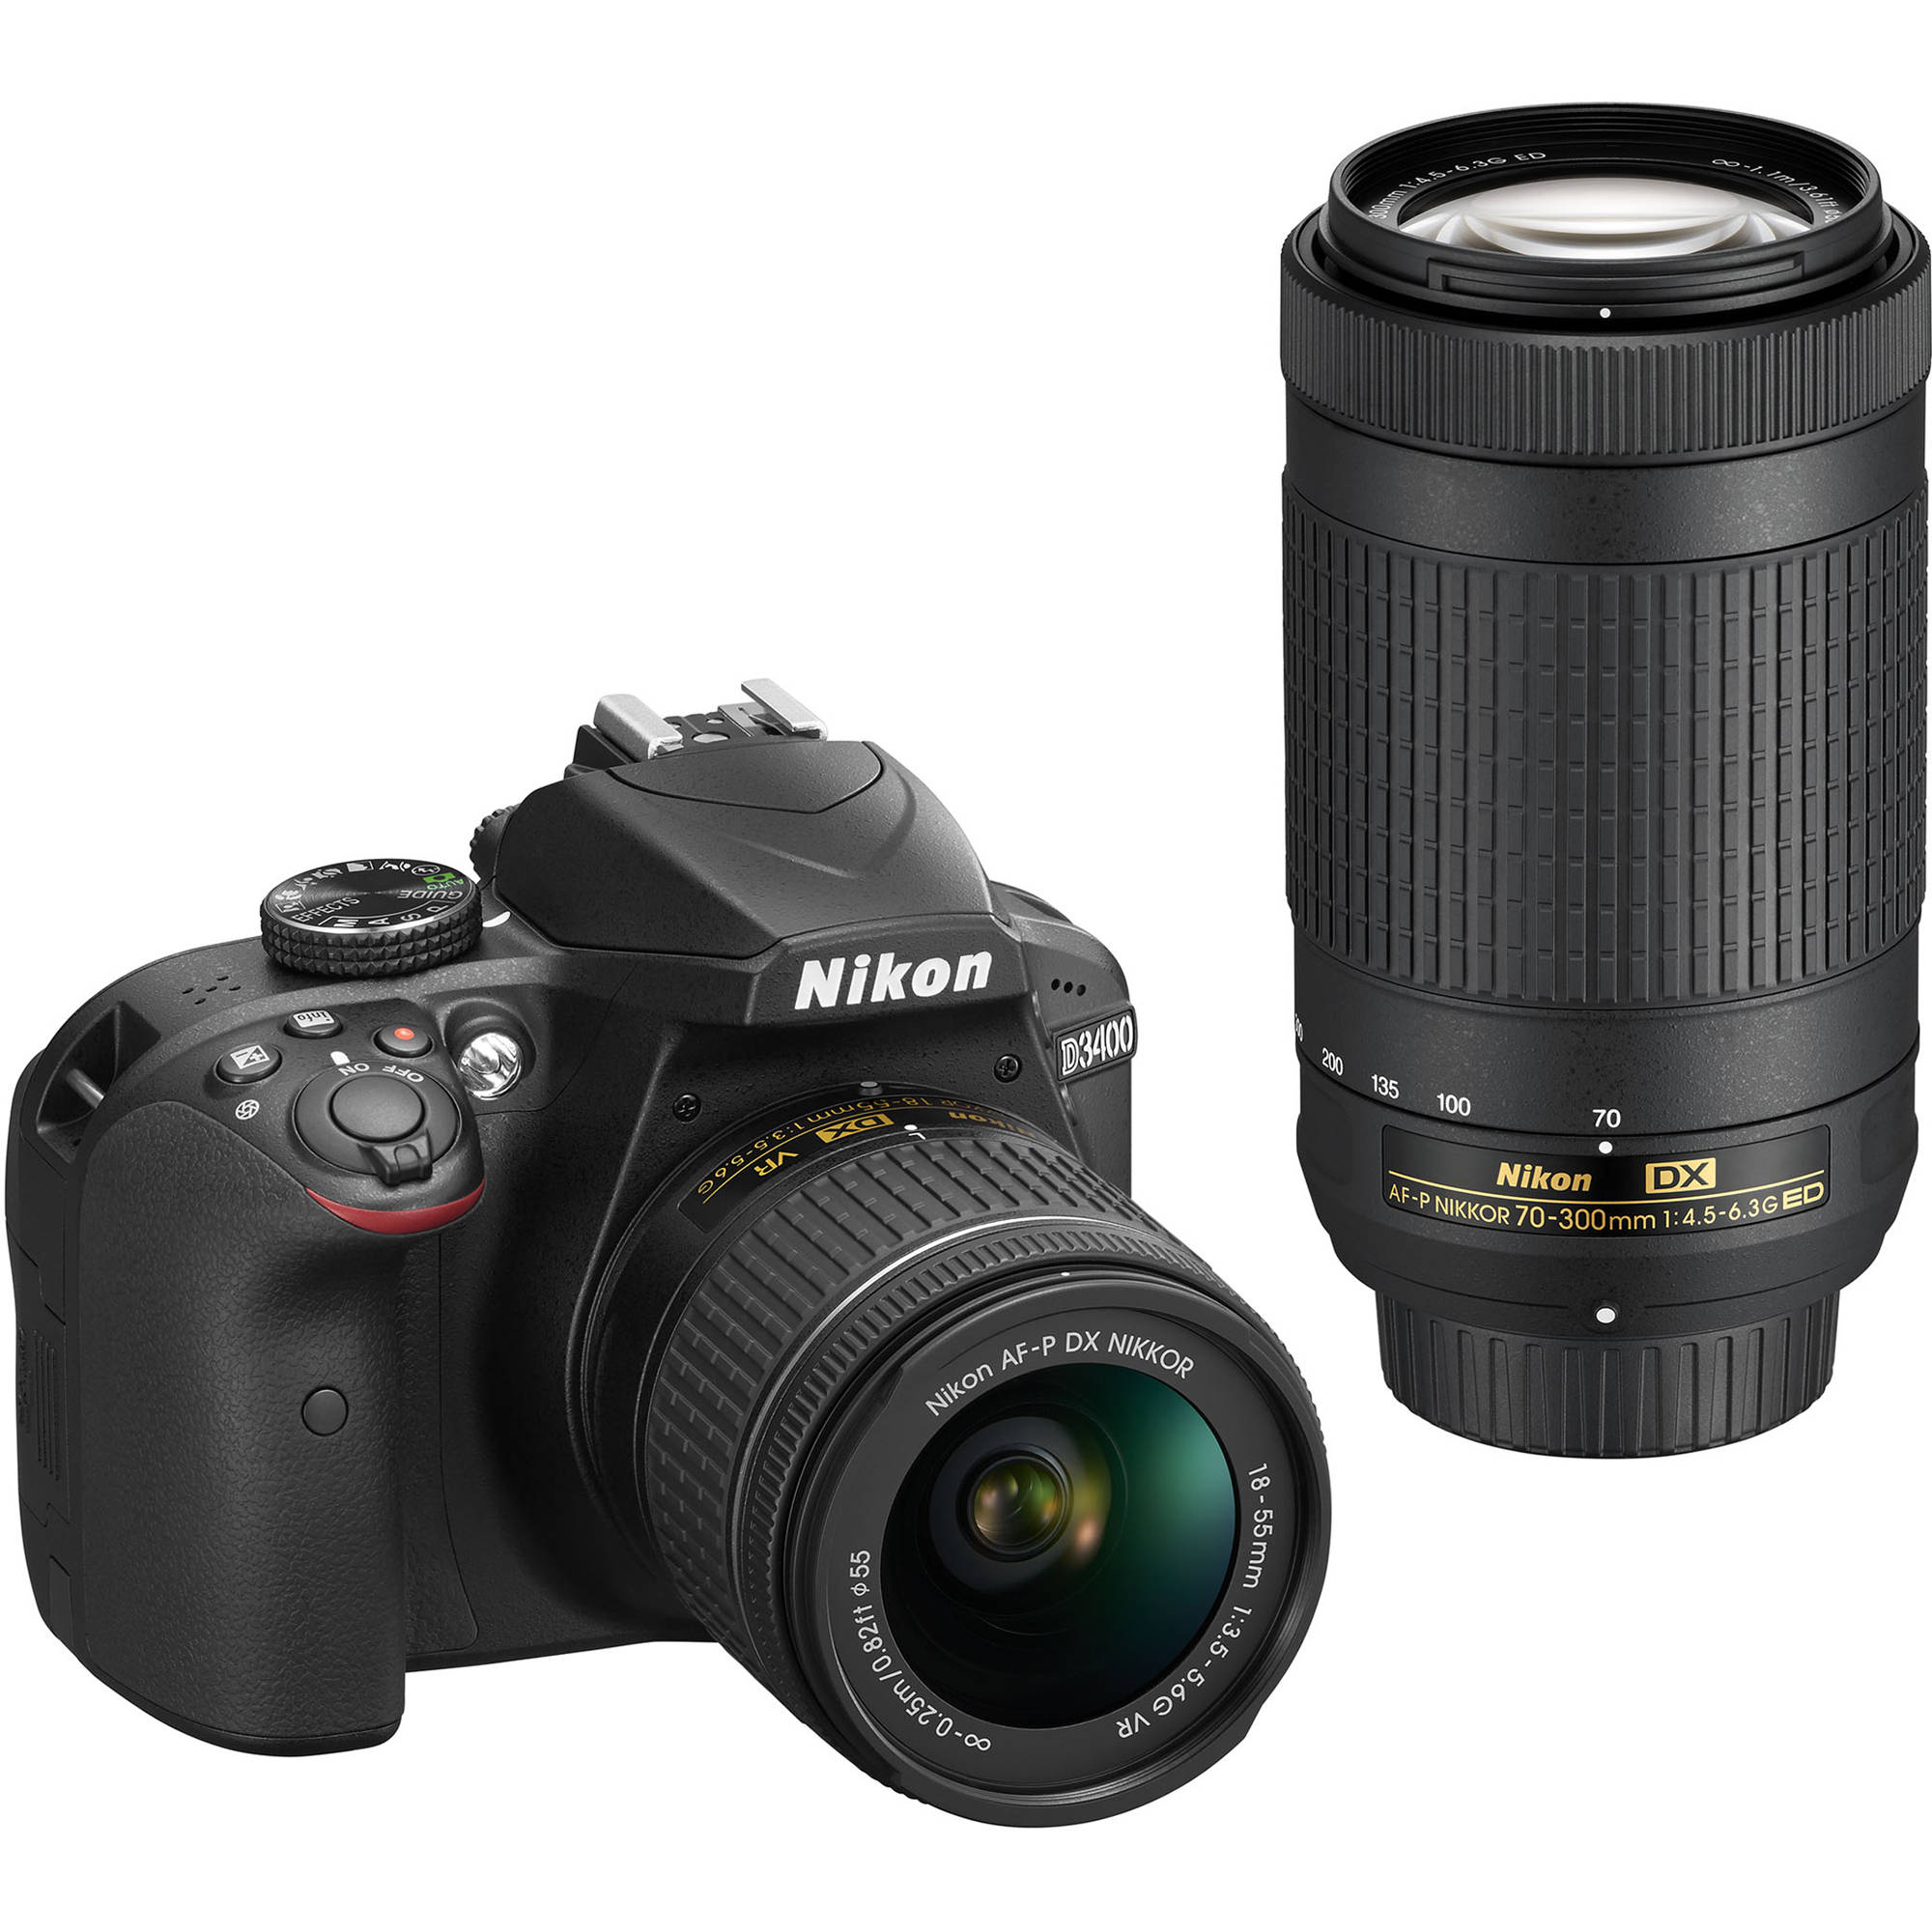 Nikon D3400 DSLR Camera with 18-55mm and 70-300mm Lenses 1573